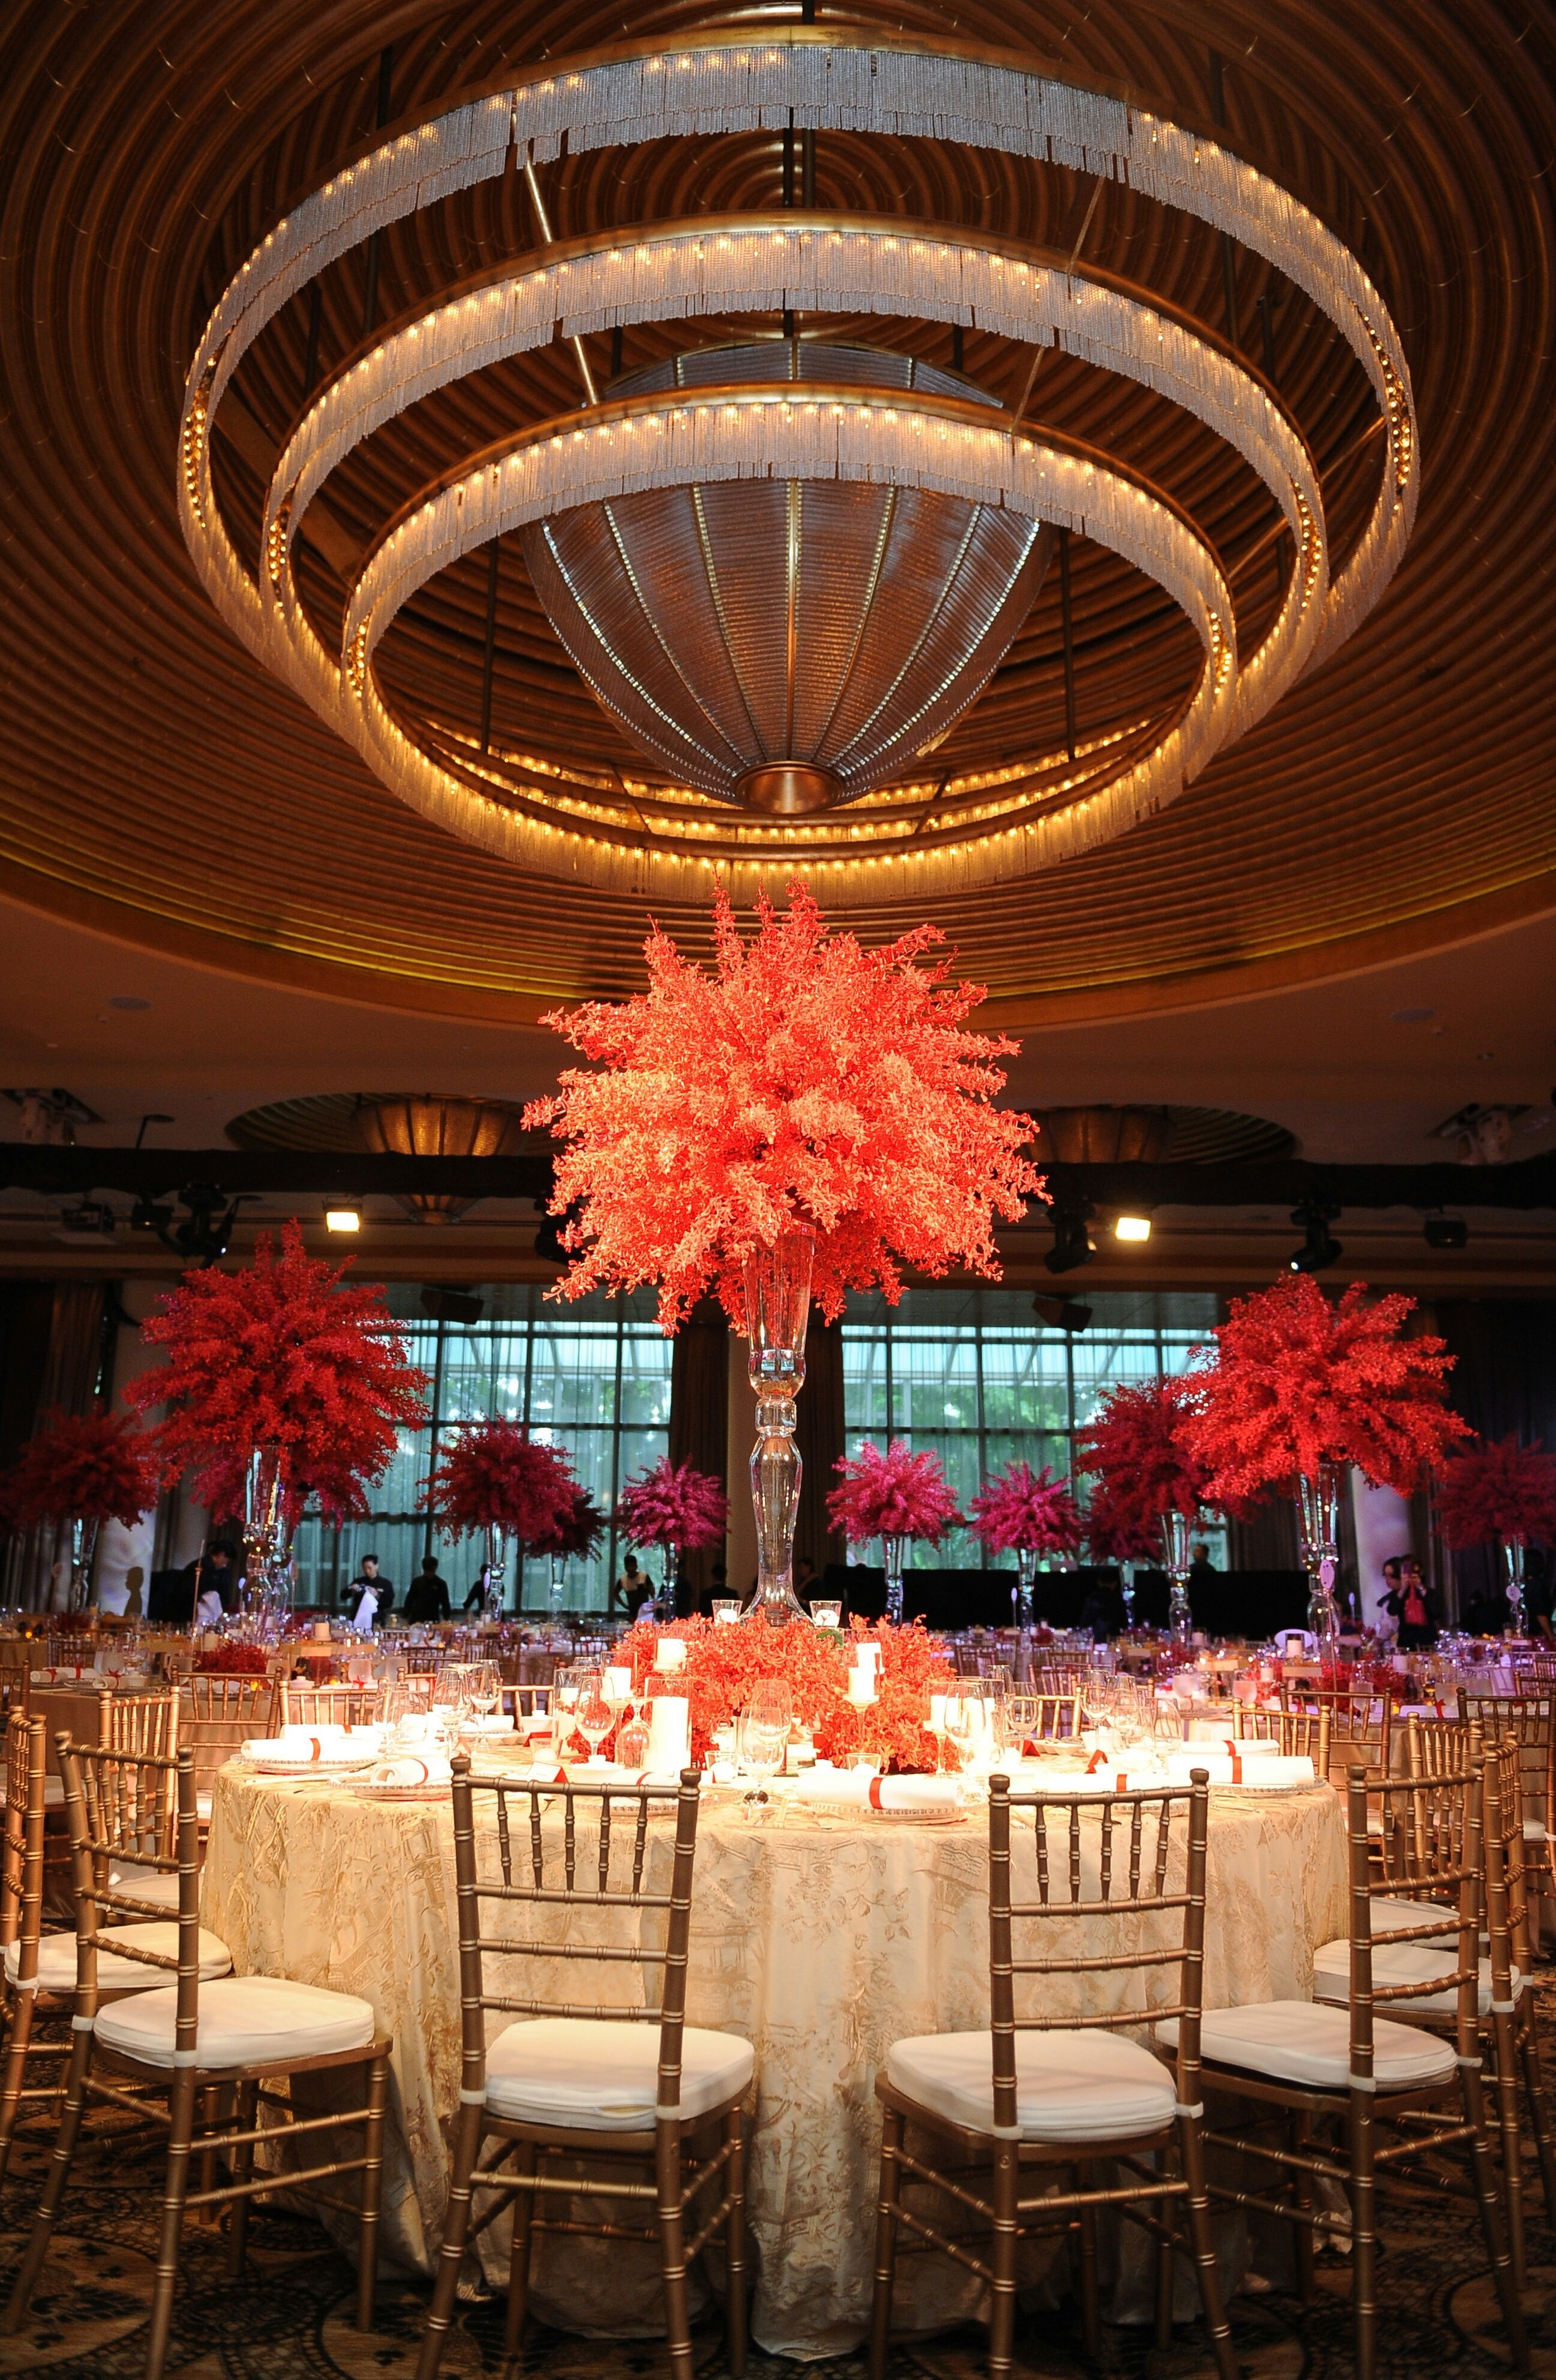 Glamorous red wedding decoration project by steves decor http glamorous red wedding decoration project by steves decor httpbridestory junglespirit Choice Image